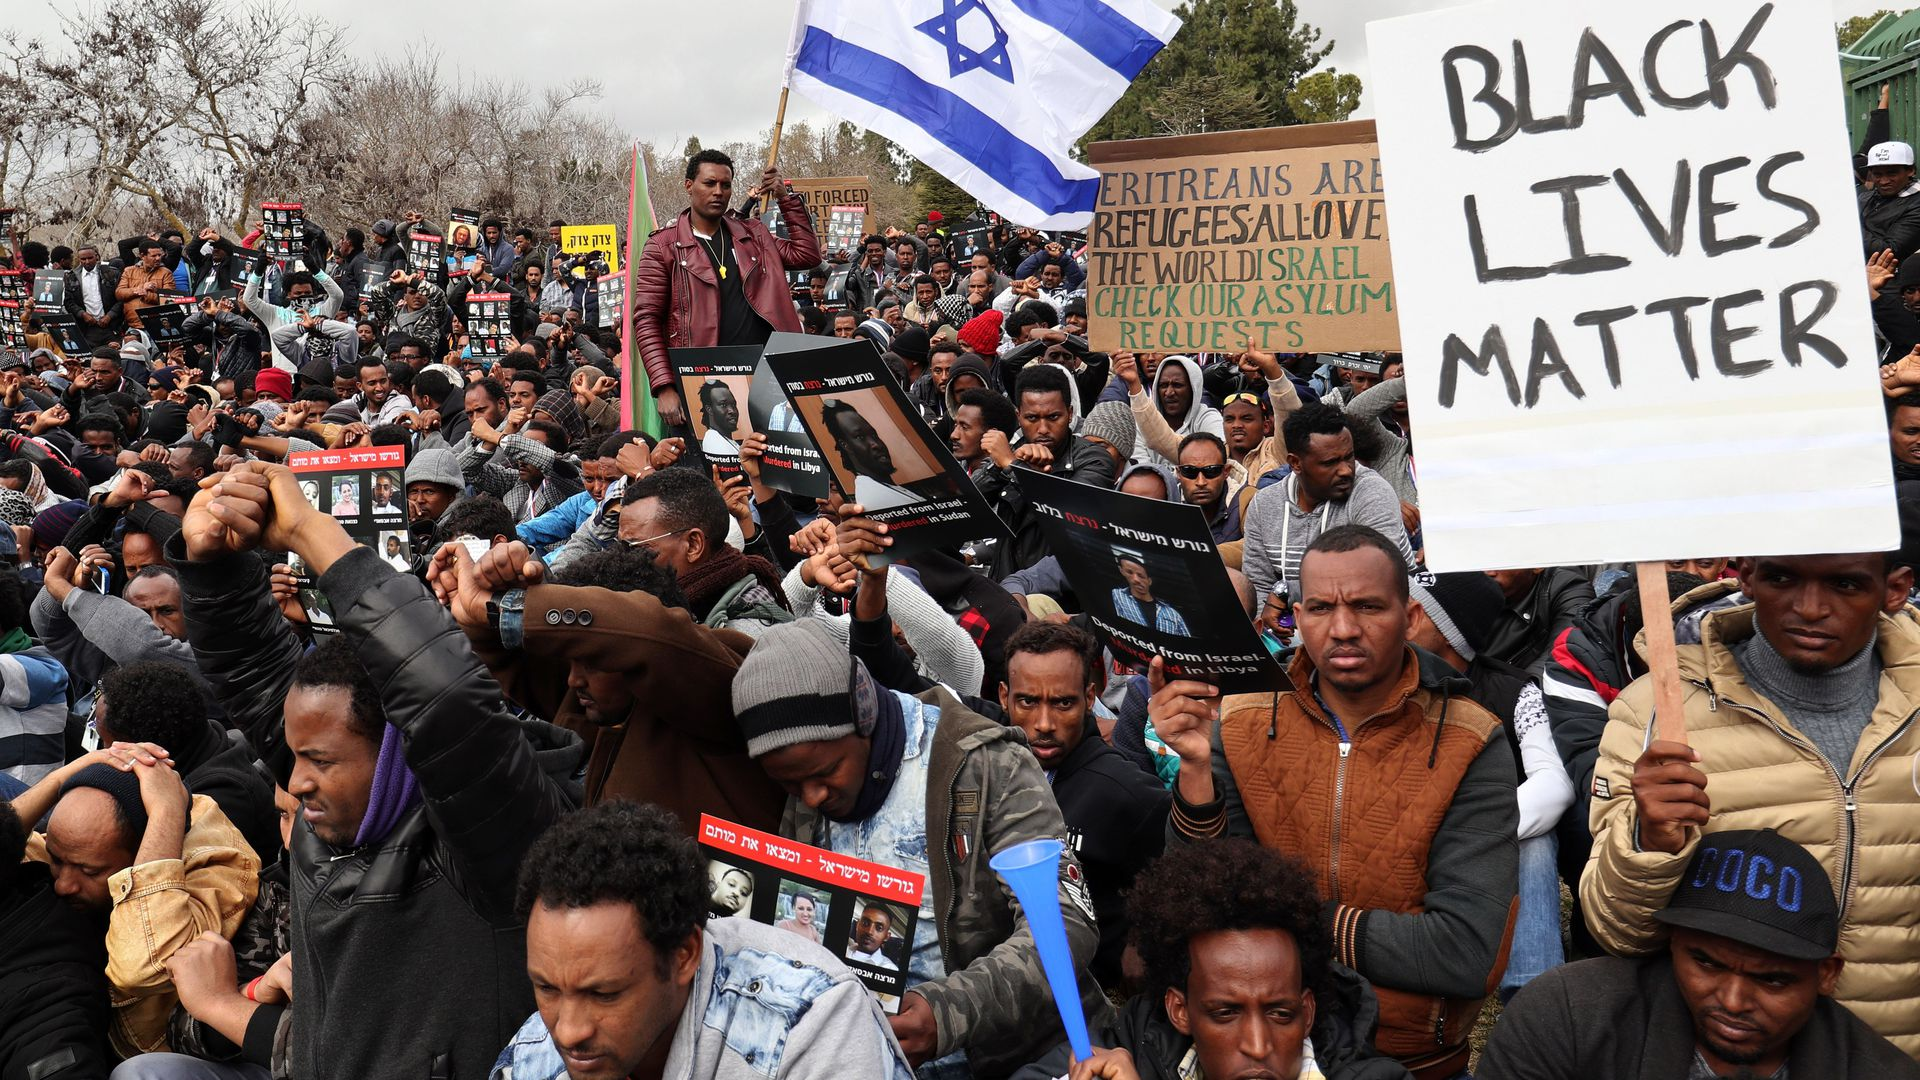 u n urges israel to reconsider move to deport african migrants